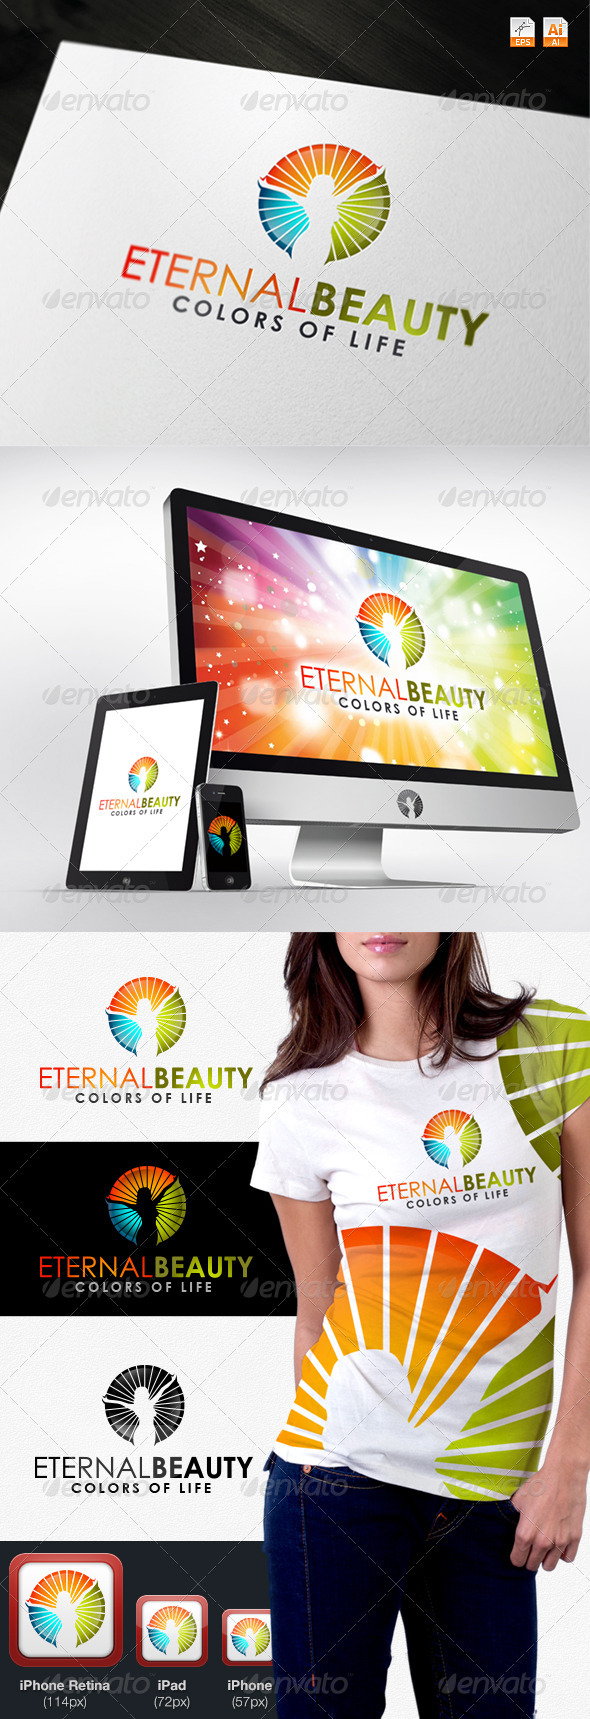 GraphicRiver Eternal Beauty Colors of Life Logo 3730334